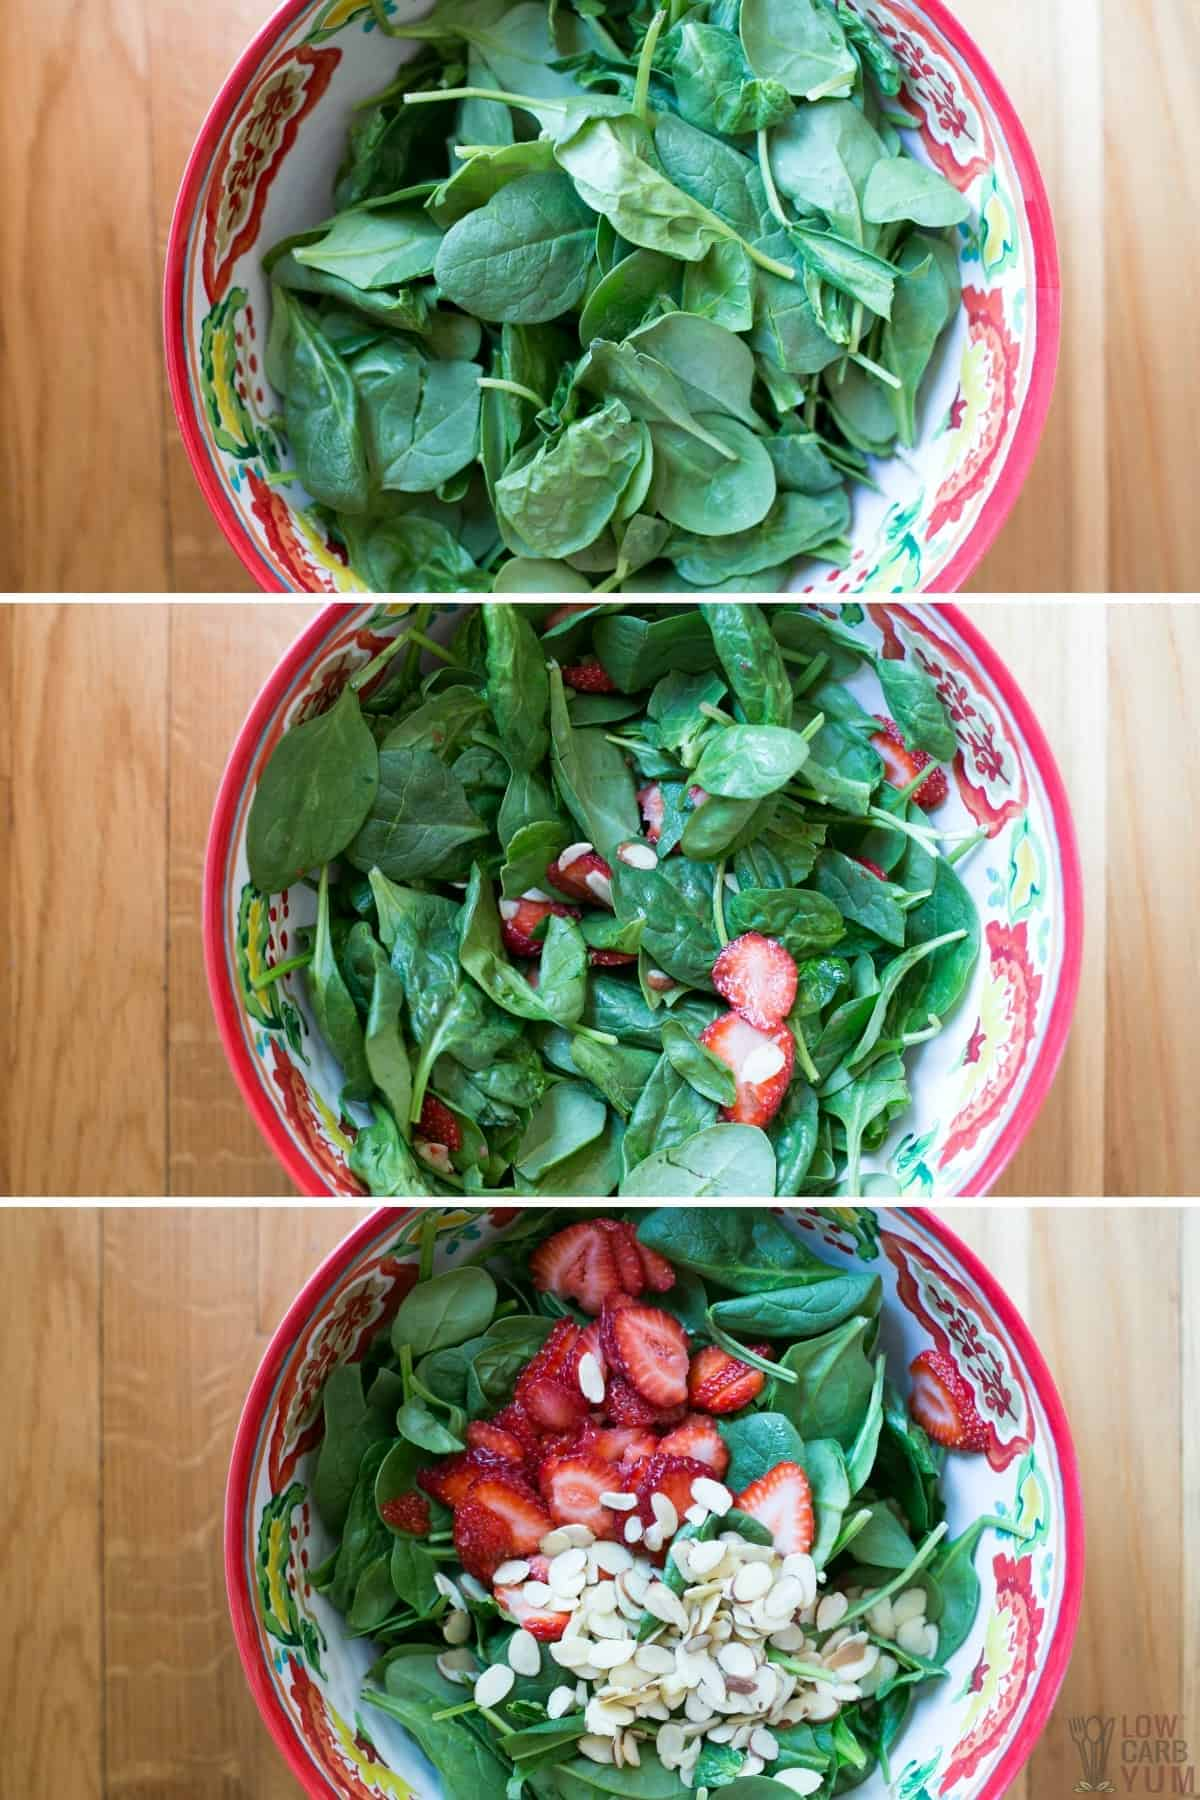 assembling the salad in a large bowl